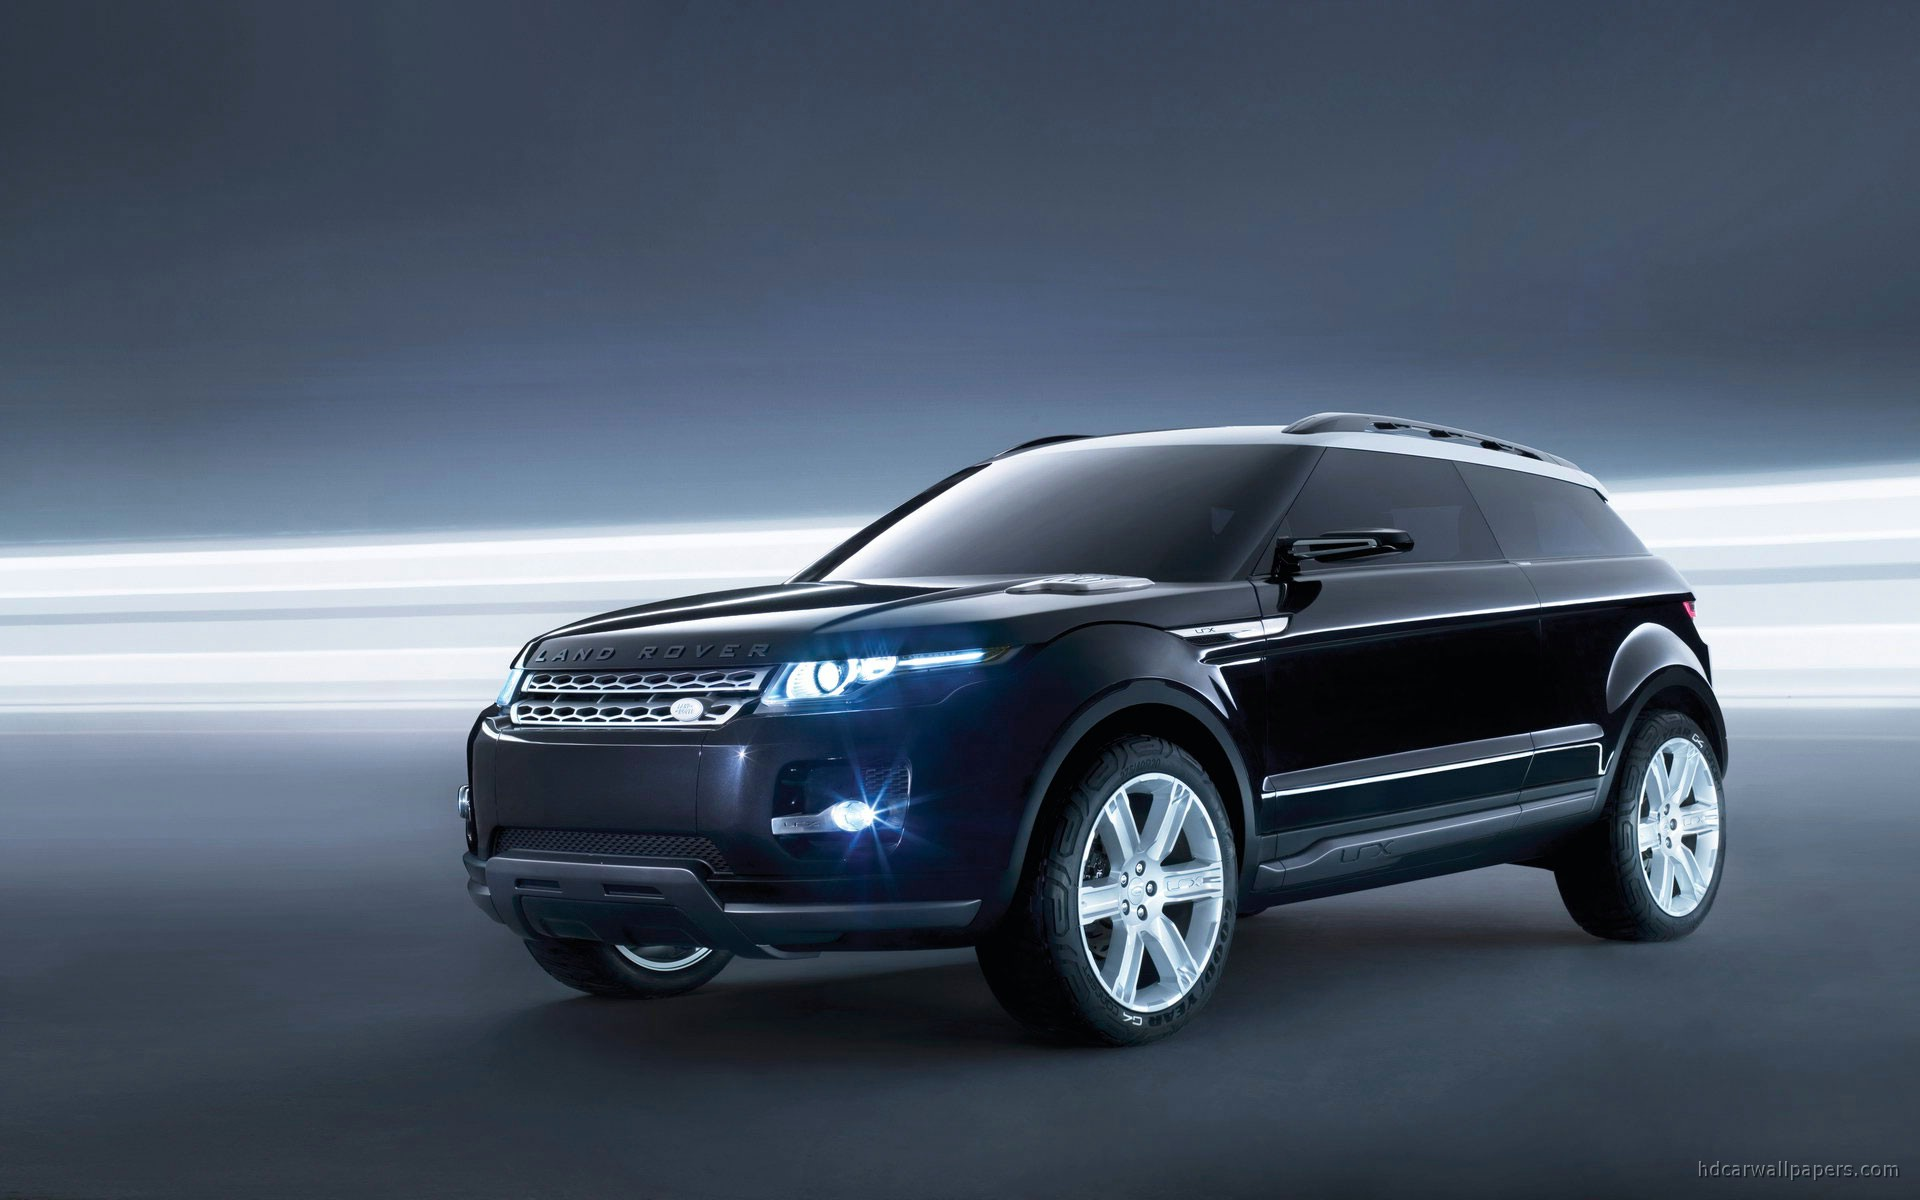 Group Of Range Rover Concept Hd Wallpapers